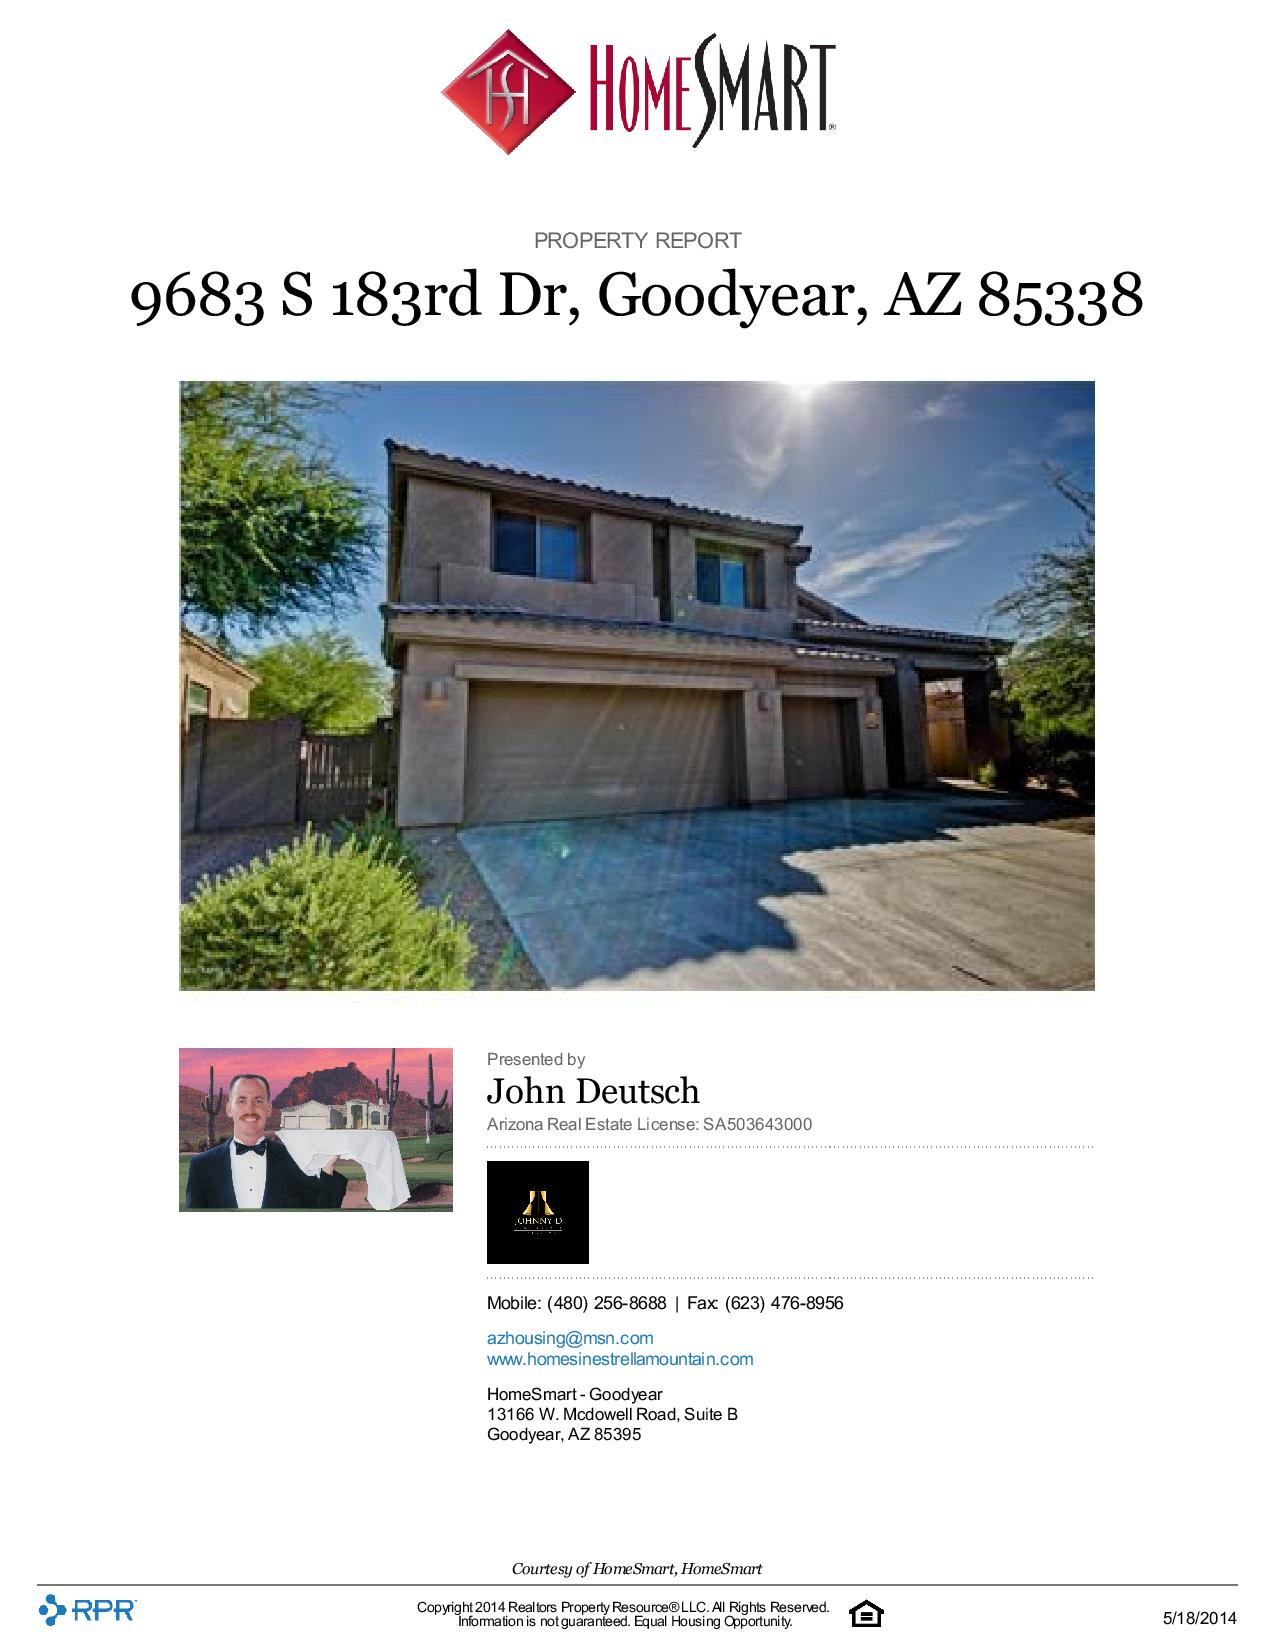 9683-S-183rd-Dr-Goodyear-AZ-85338-page-001